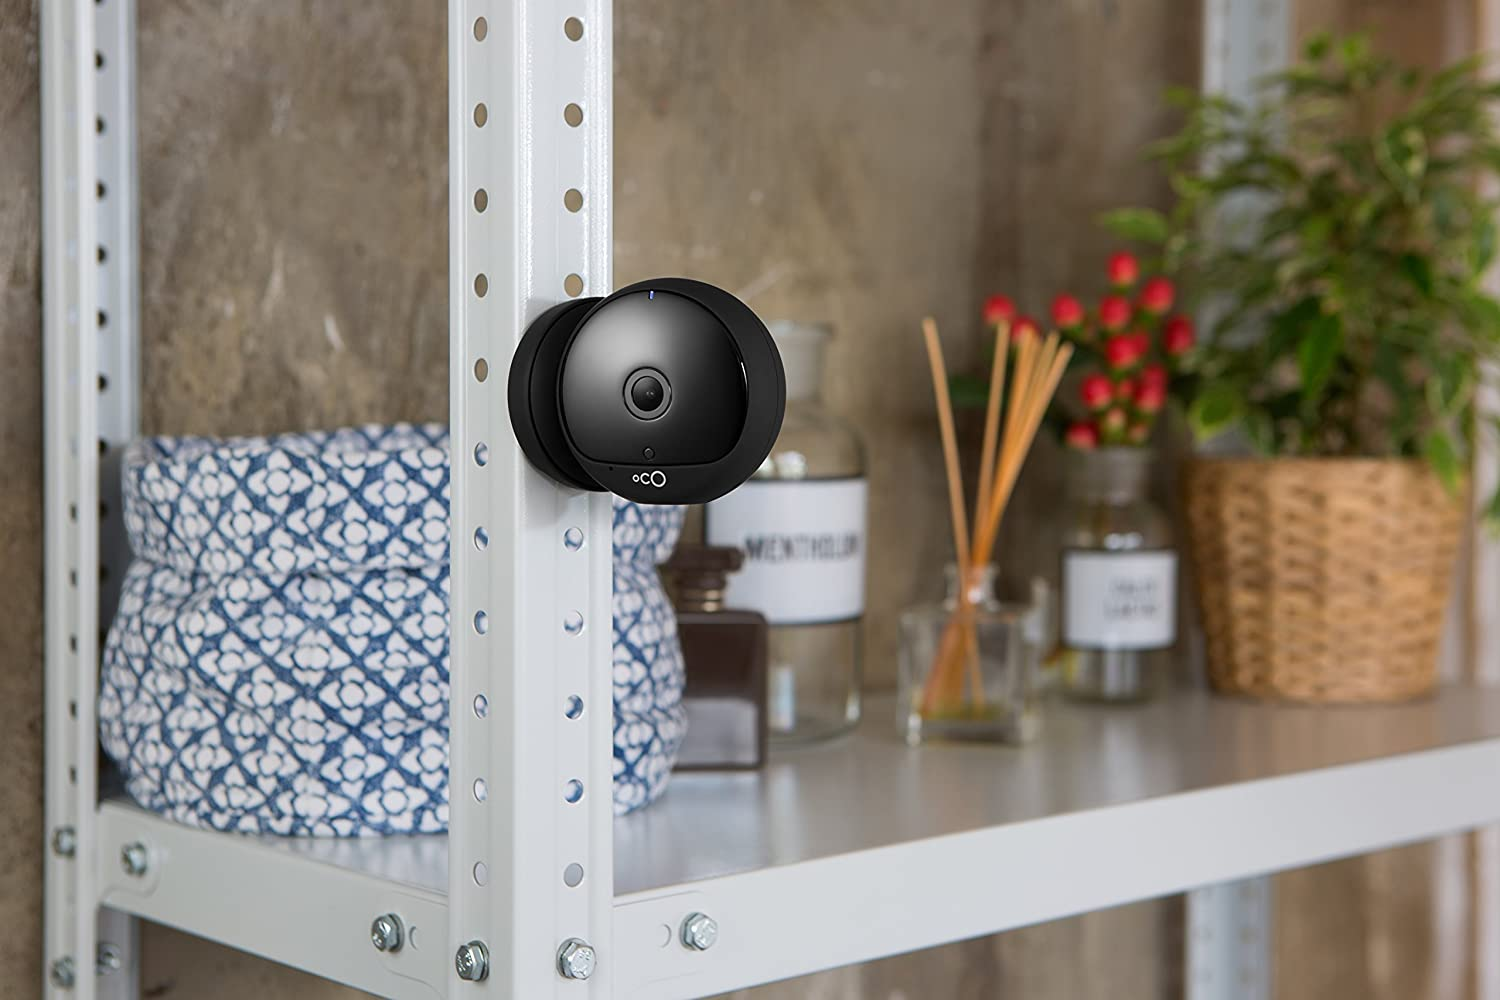 Oco 2 Full HD 1080p Wireless Security Camera